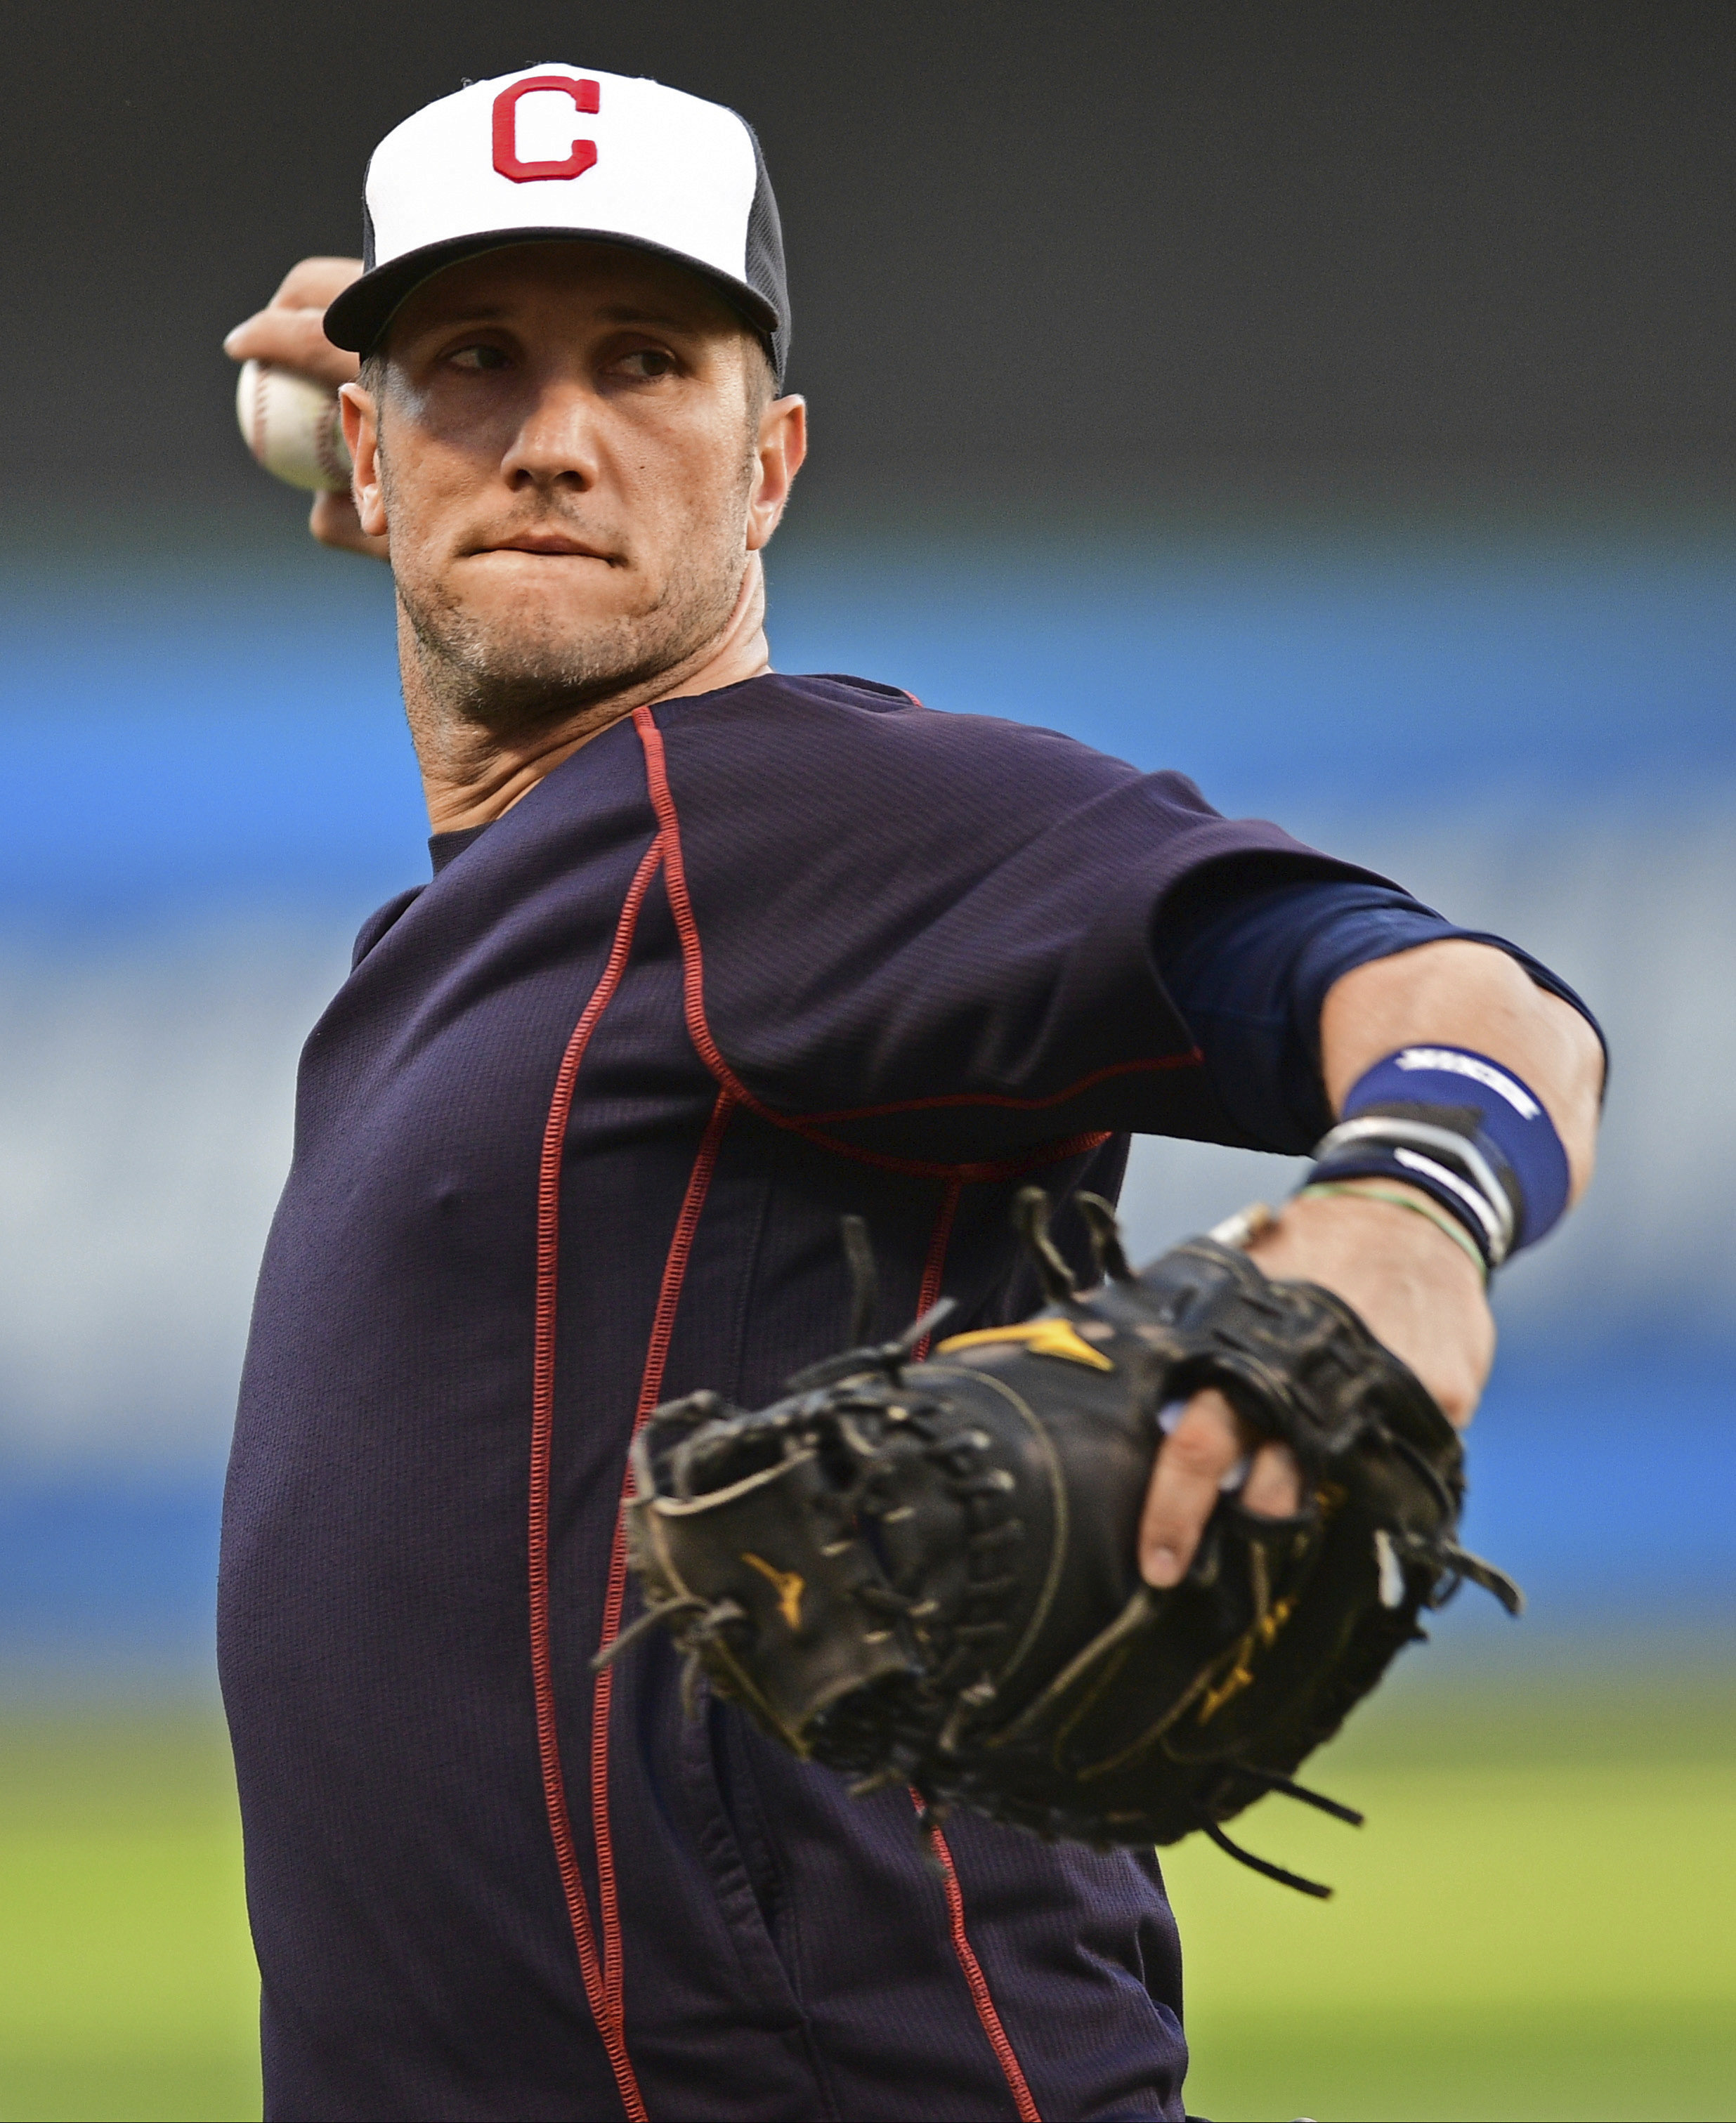 Cleveland Indians' Yan Gomes throws a ball during an infield team workout, Tuesday Oct. 4, 2016, in Cleveland. The Indians start the American League Divisional Series against the Boston Red Sox on Thursday in Cleveland. (AP Photo/David Dermer)